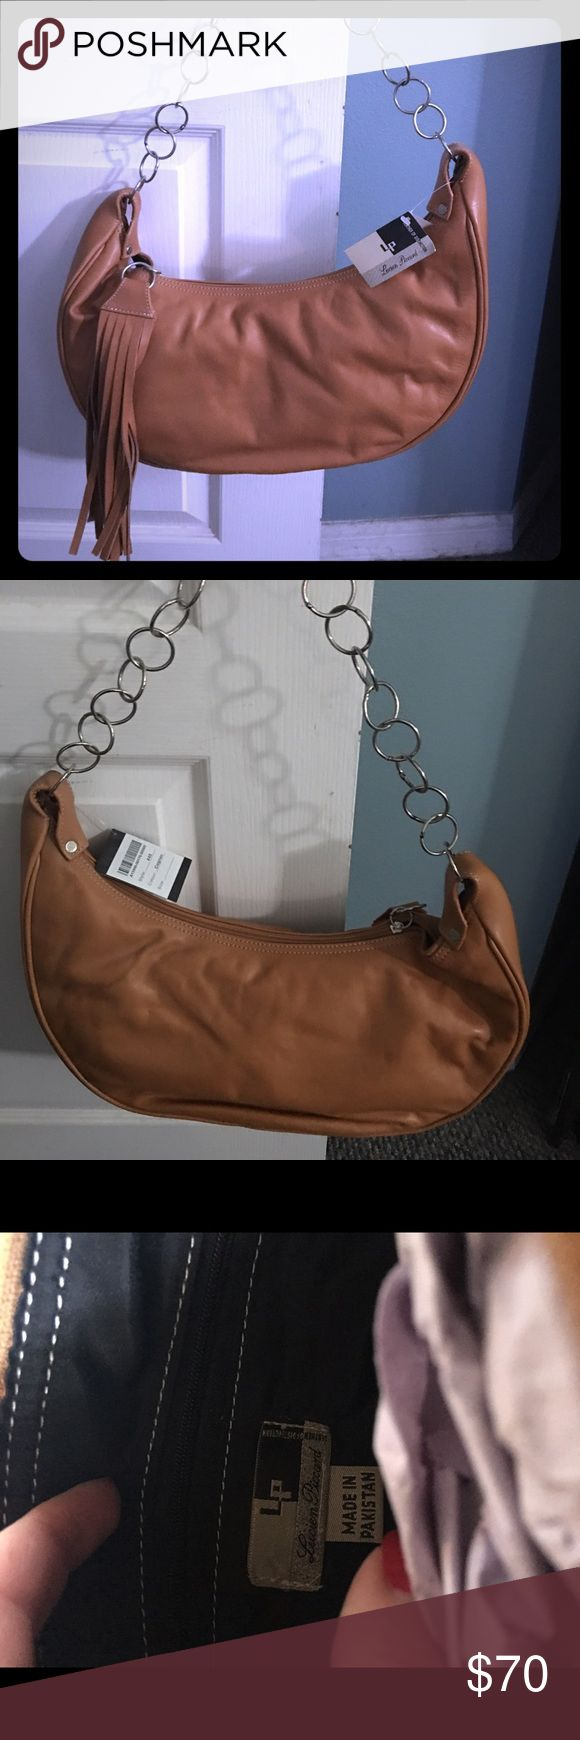 Lucien Piccard leather bag Never used!  Still has tag and bag cover came with Lucien Piccard Bags